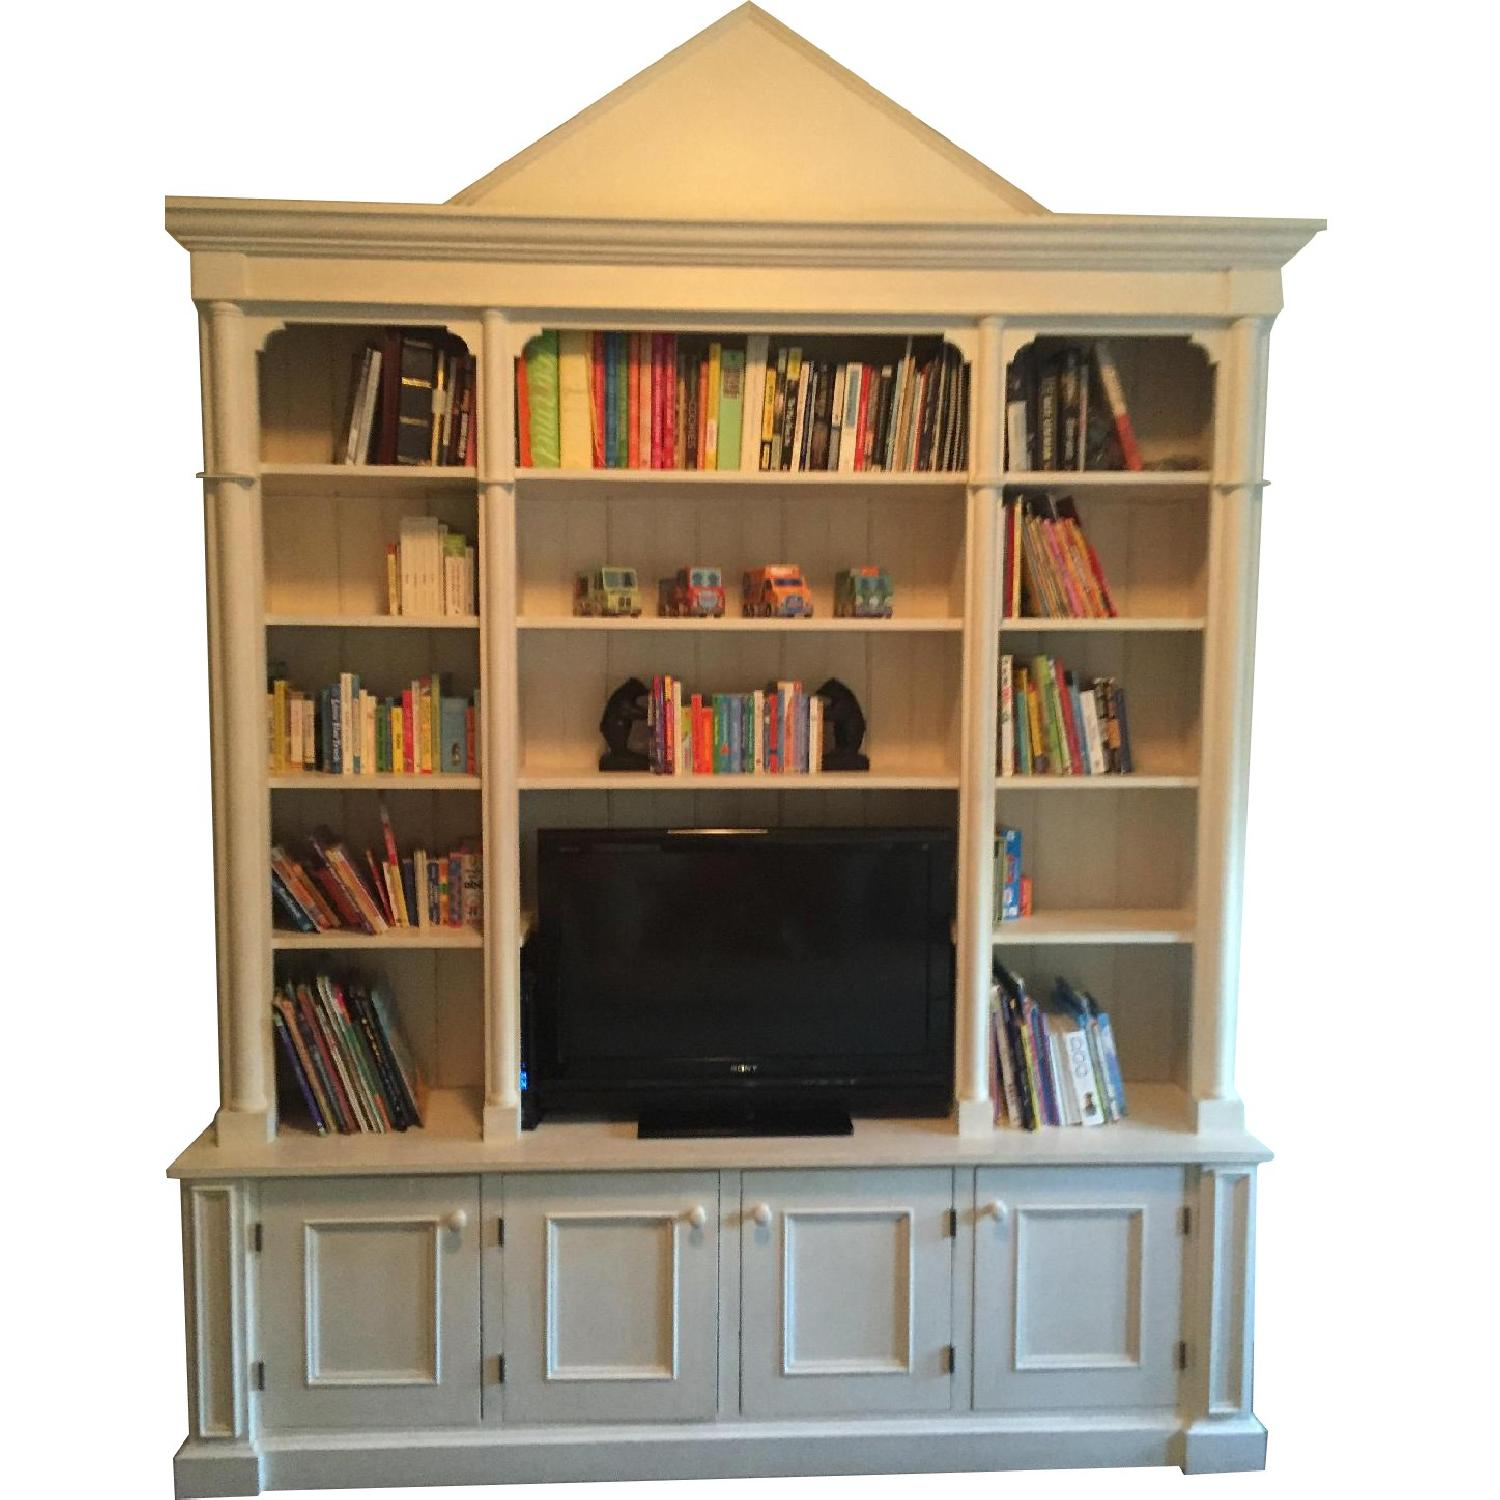 ABC Carpet & Home Toad Hill Collection Bookcase w/ TV Shelf - image-0